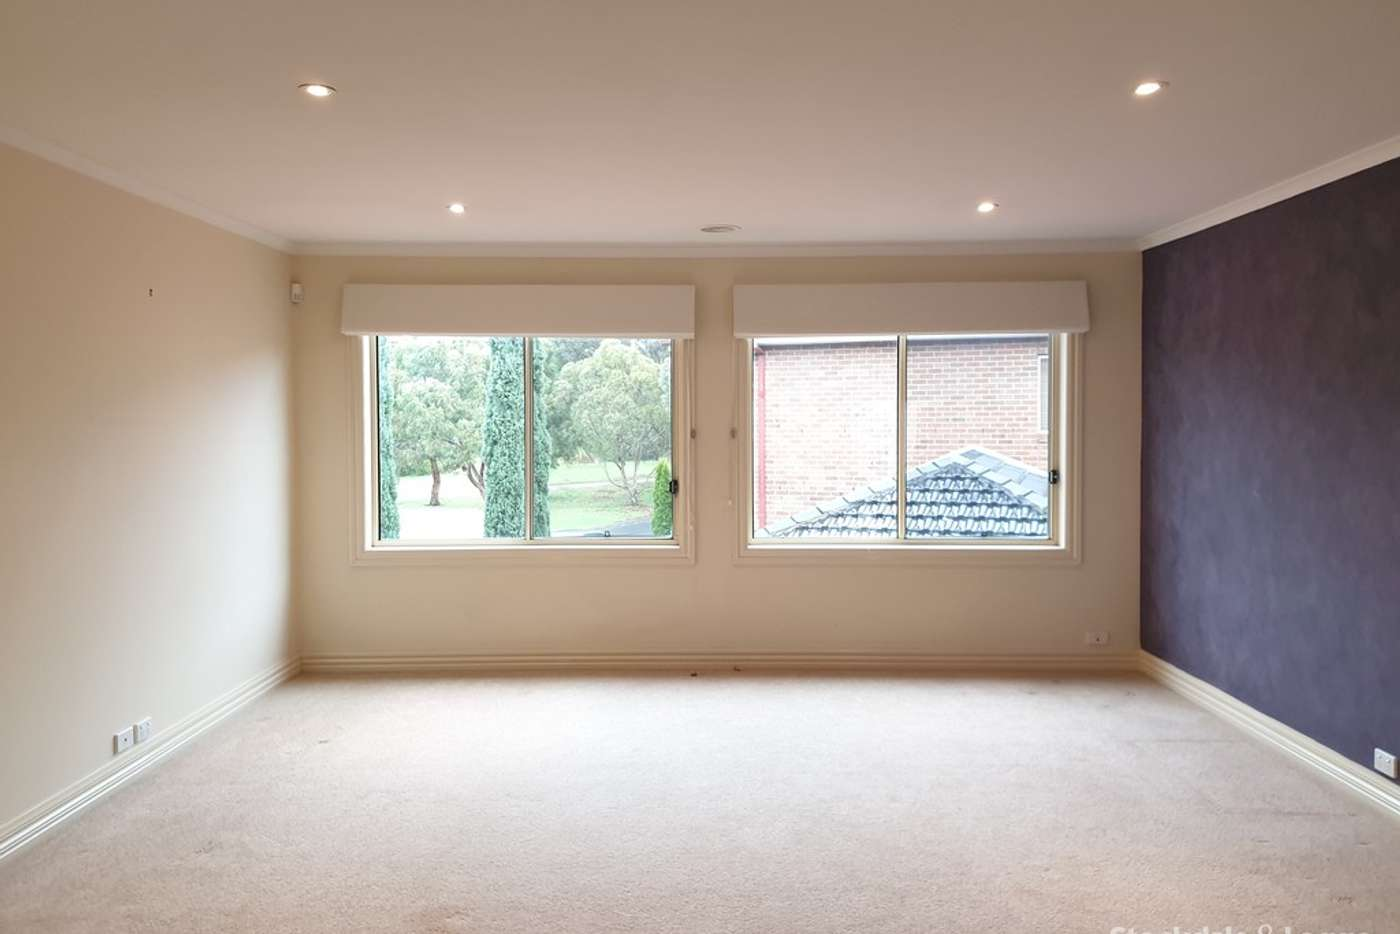 Sixth view of Homely house listing, 29 Adelaide Boulevard, Gowanbrae VIC 3043